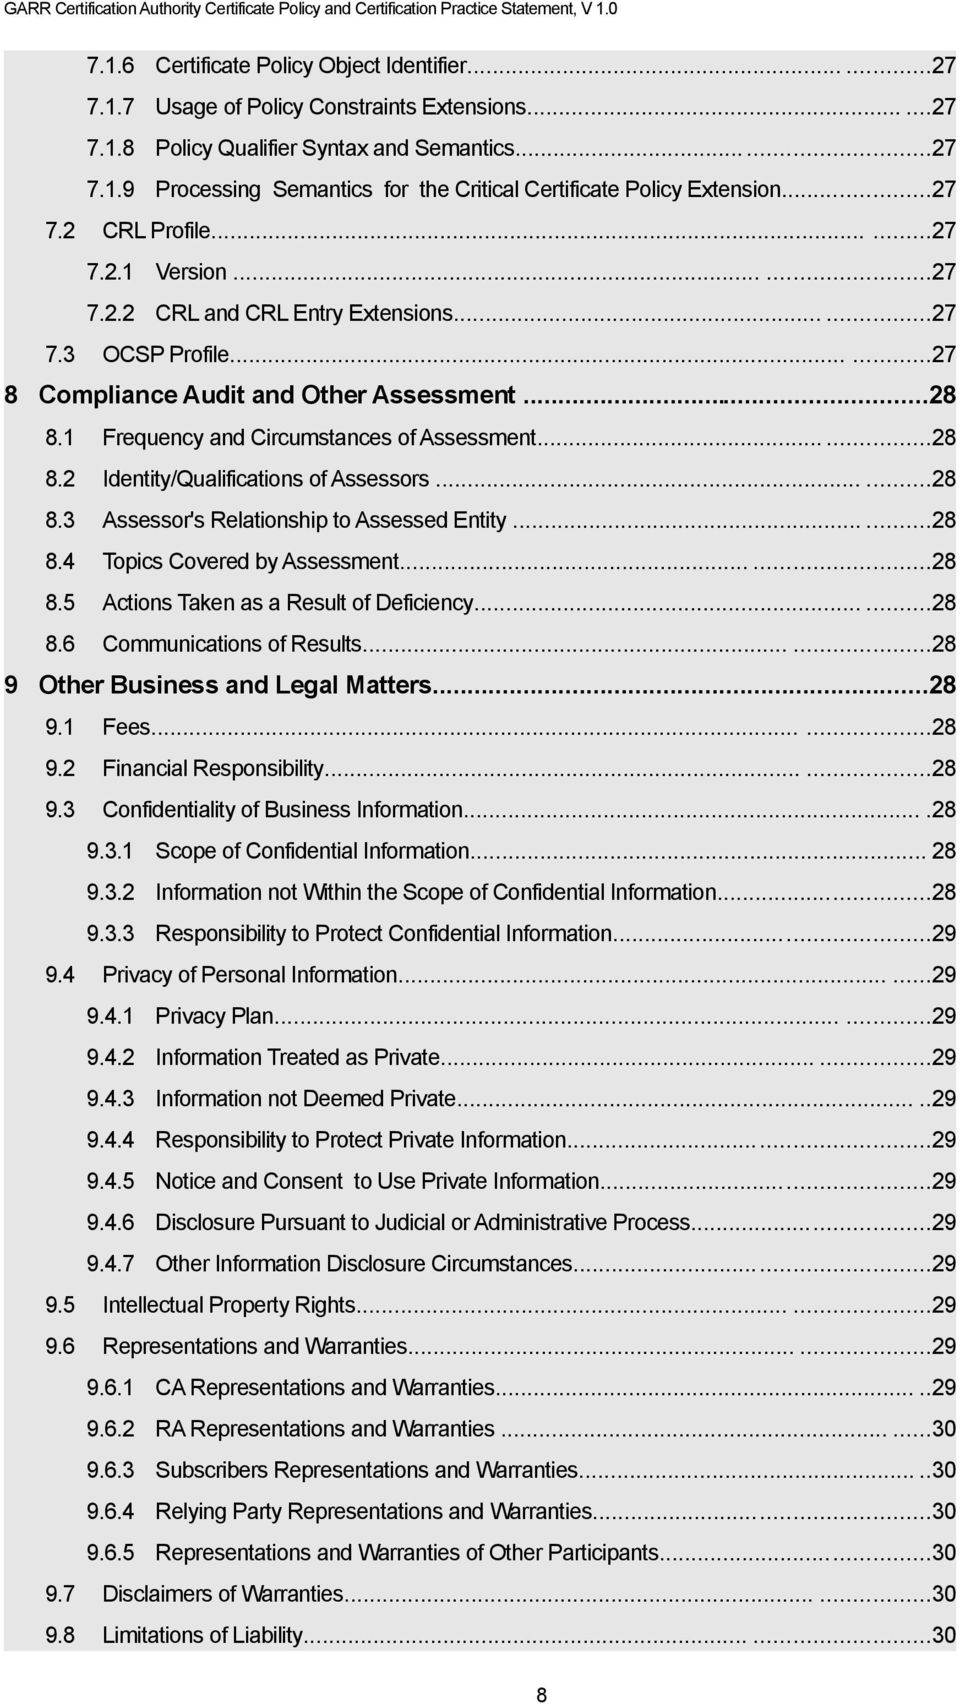 1 Frequency and Circumstances of Assessment......28 8.2 Identity/Qualifications of Assessors......28 8.3 Assessor's Relationship to Assessed Entity......28 8.4 Topics Covered by Assessment......28 8.5 Actions Taken as a Result of Deficiency.